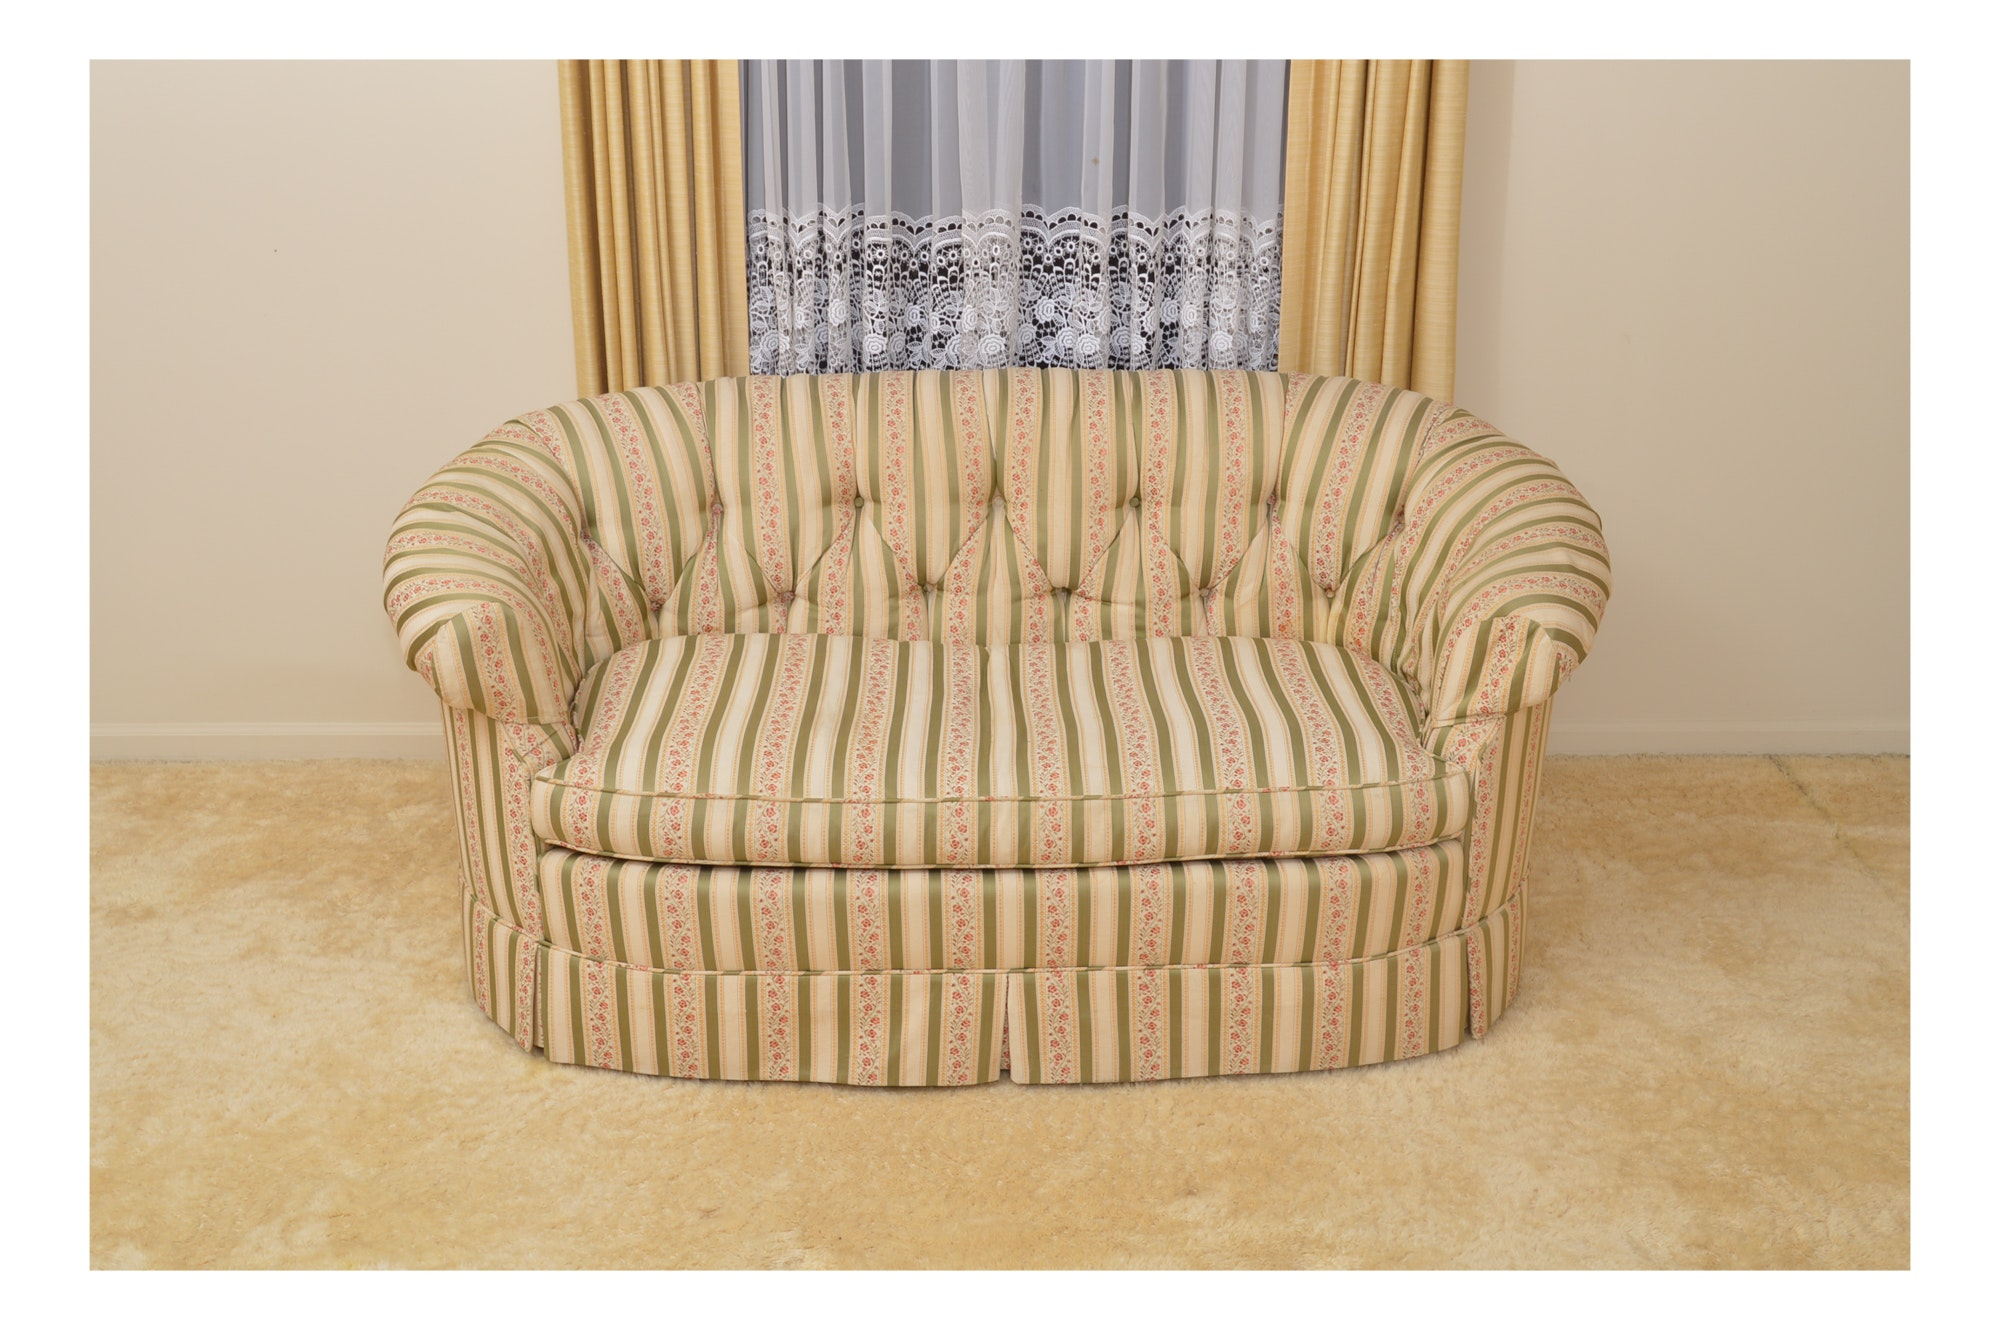 Vintage Cabriole Settee with Striped Upholstery